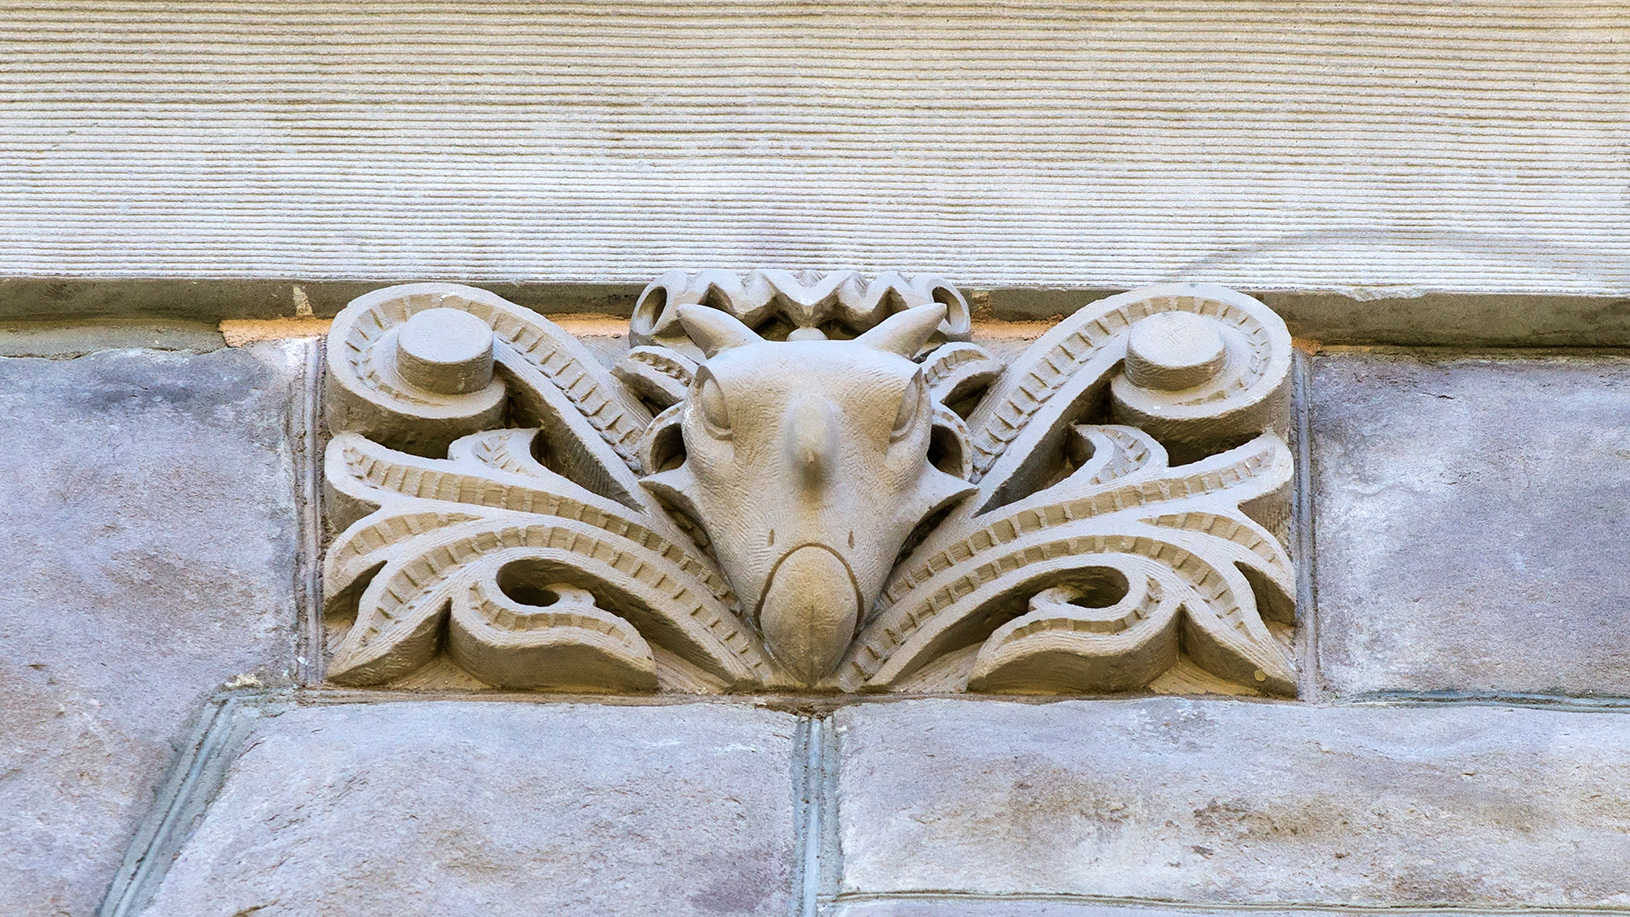 A stone carving of Kosmoceratops on the City County building in Salt Lake City.